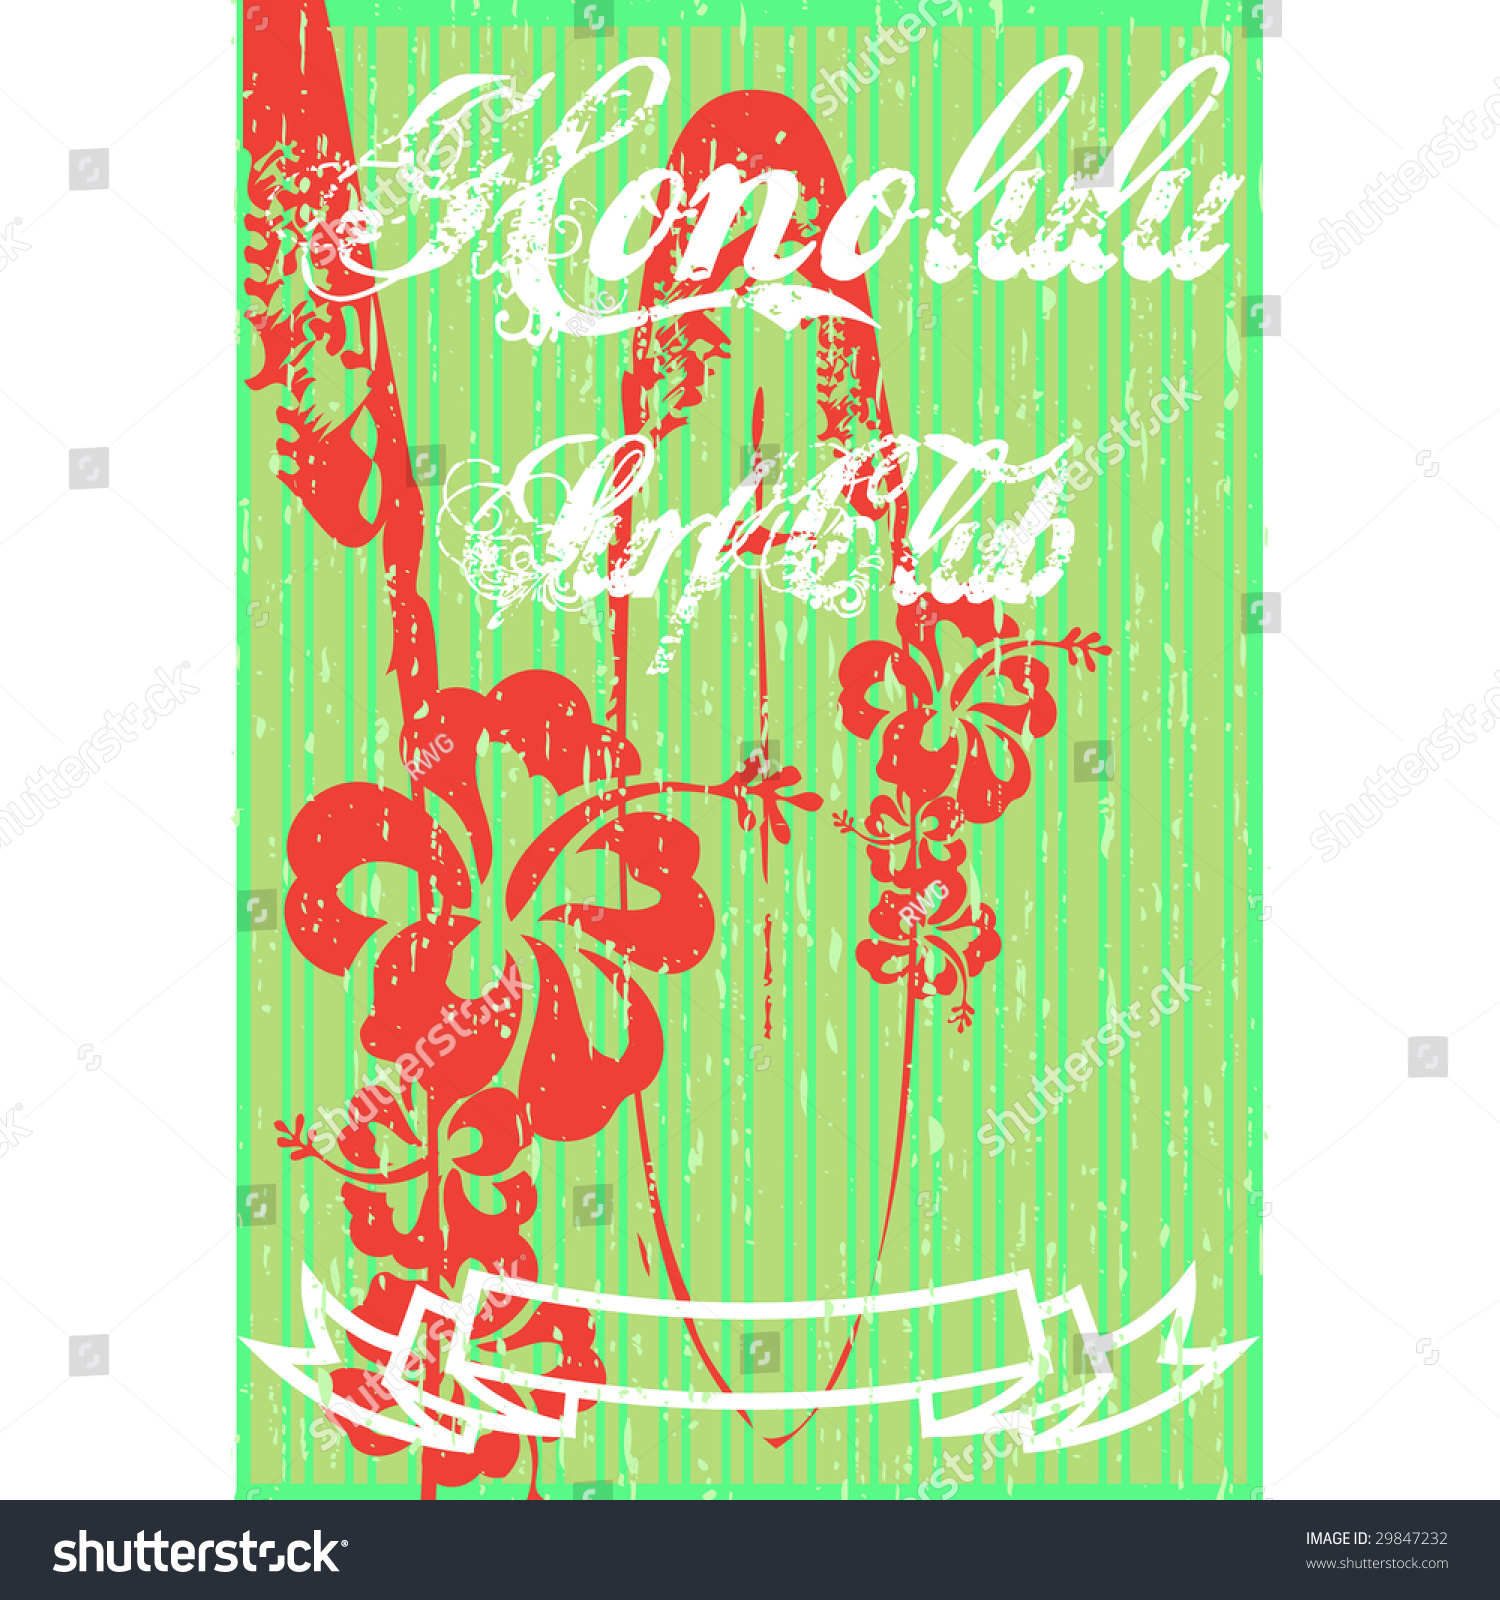 T shirt design hawaii - Surf Club Hawaii Background Or Tshirt Design With Floral Elements Preview Save To A Lightbox